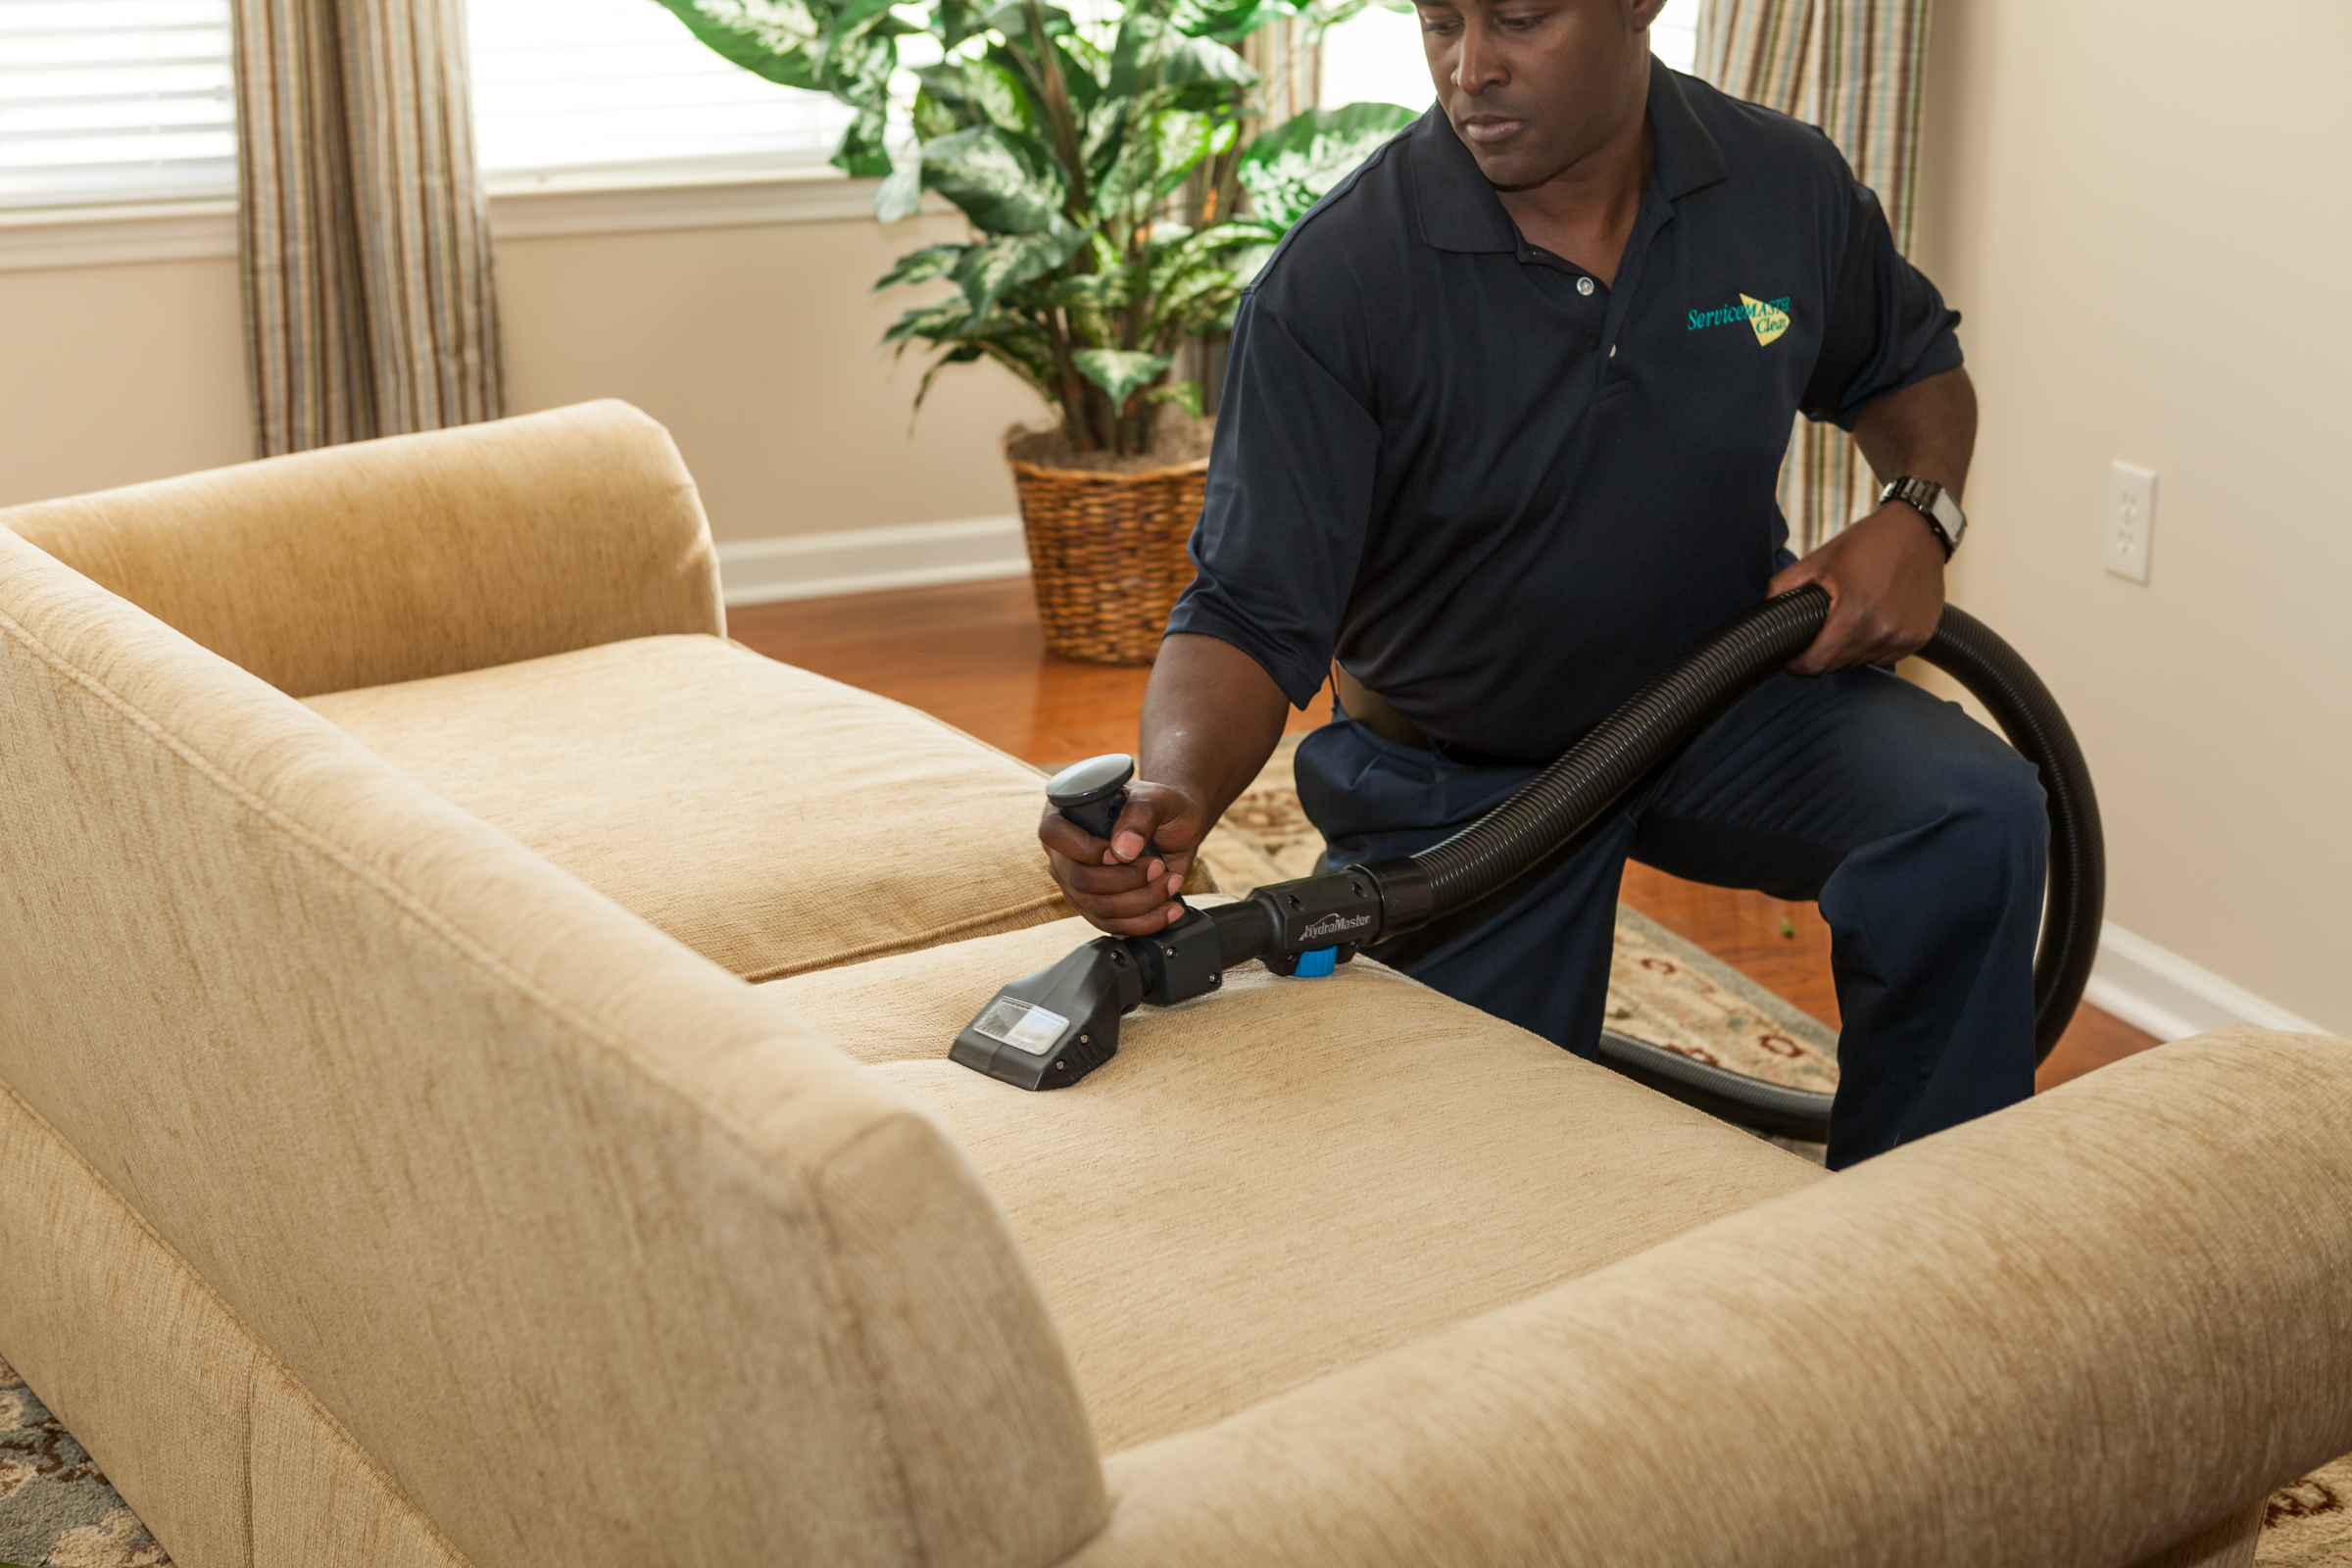 Upholstery Cleaning Carpet Cleaning Millbrae Carpet